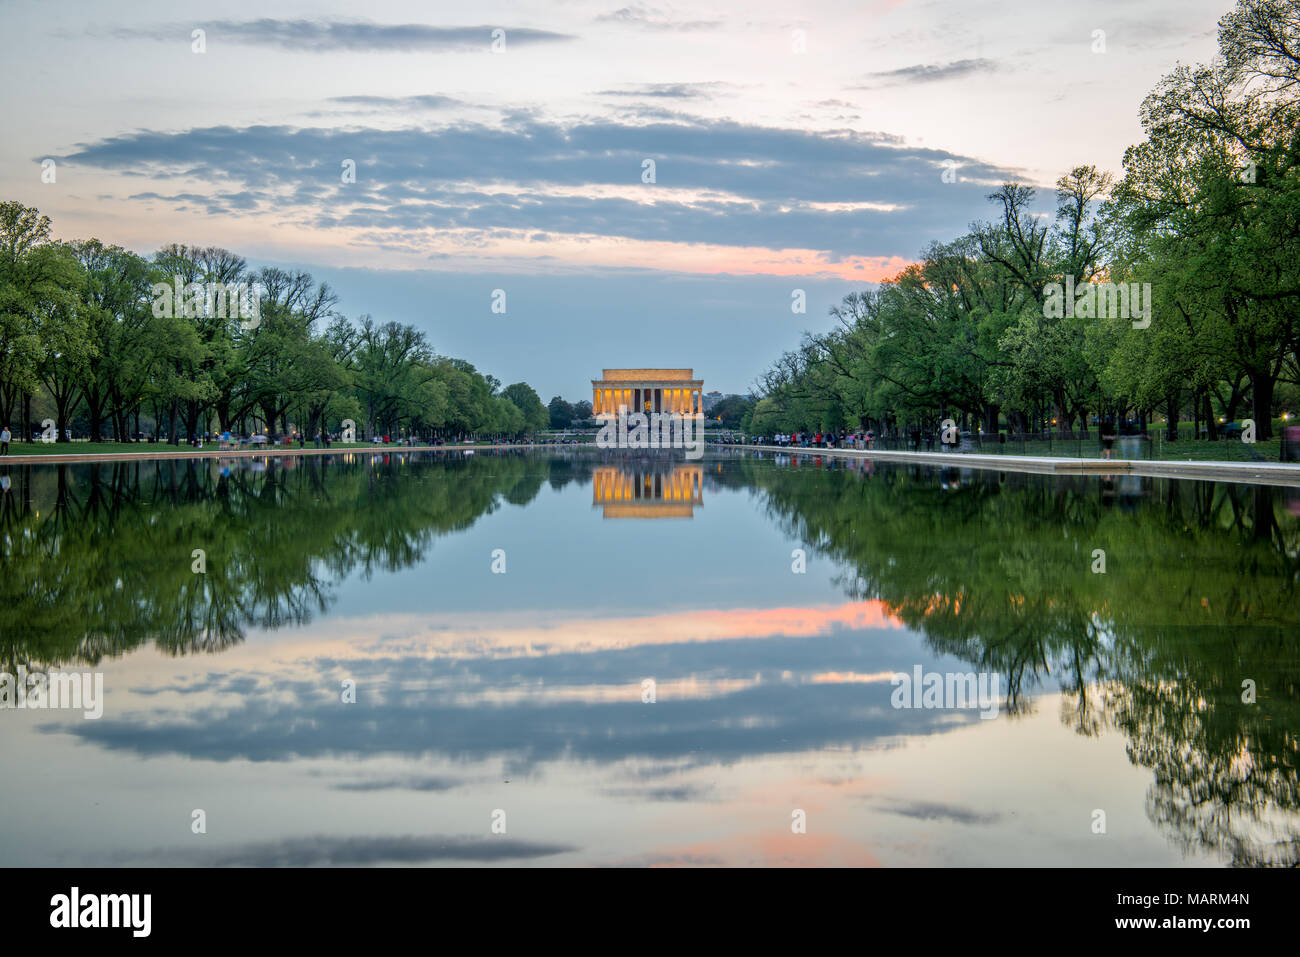 Lincoln Memorial, Washington D.C. Imagen De Stock